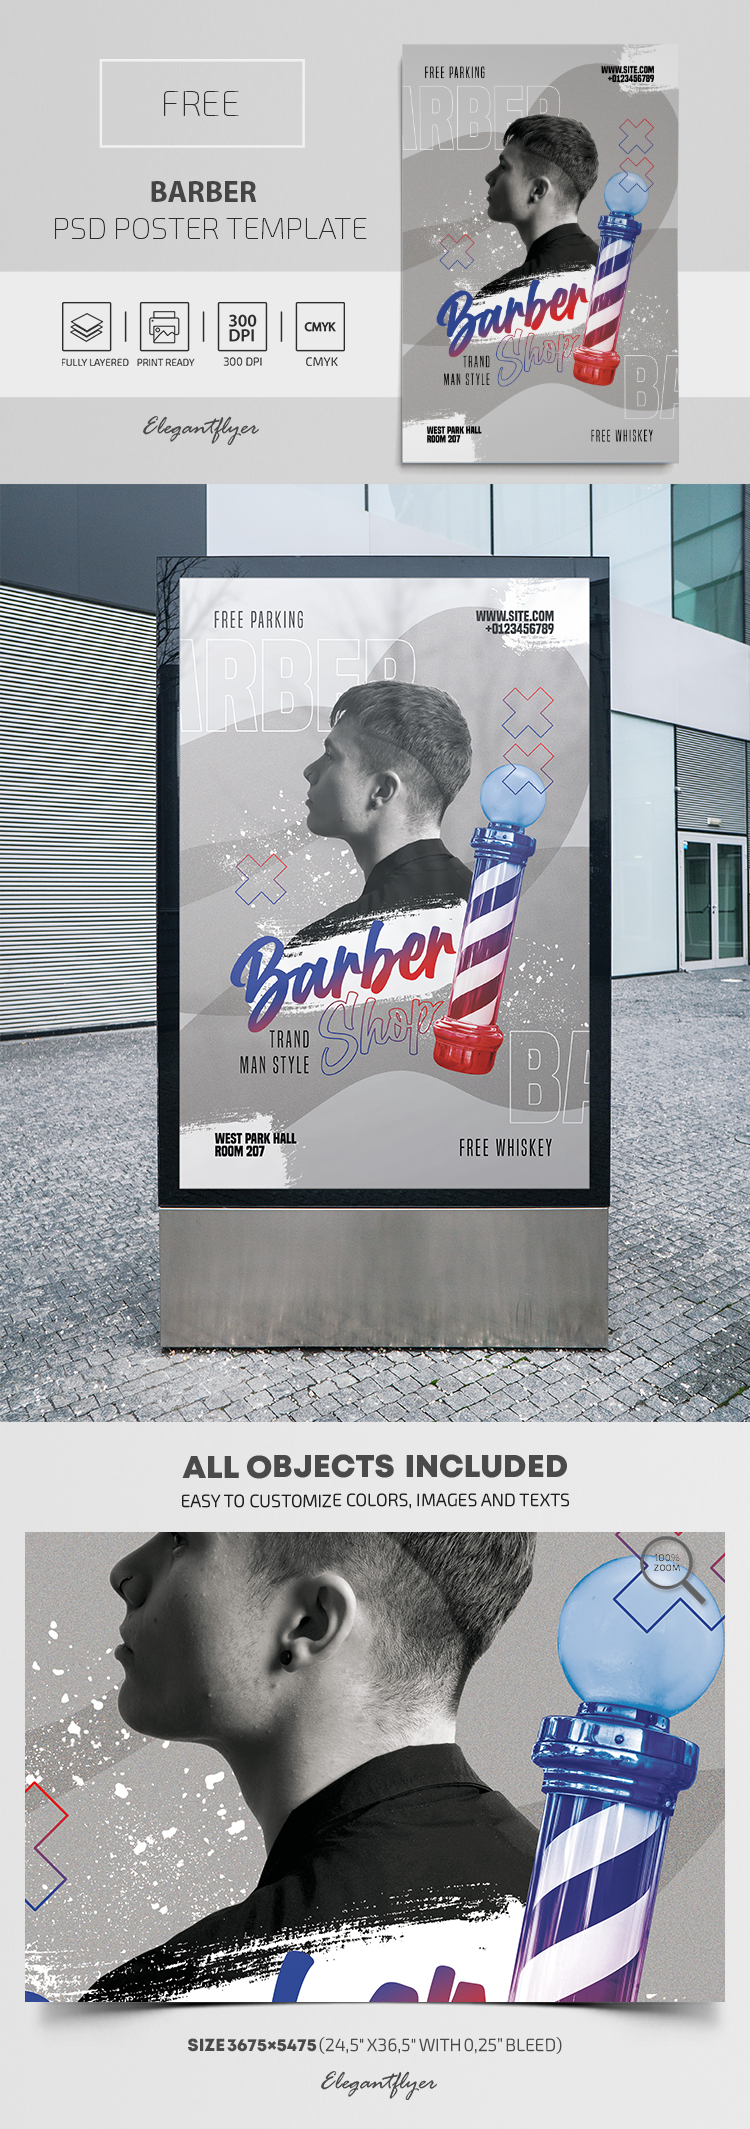 Barber – Free PSD Poster Template